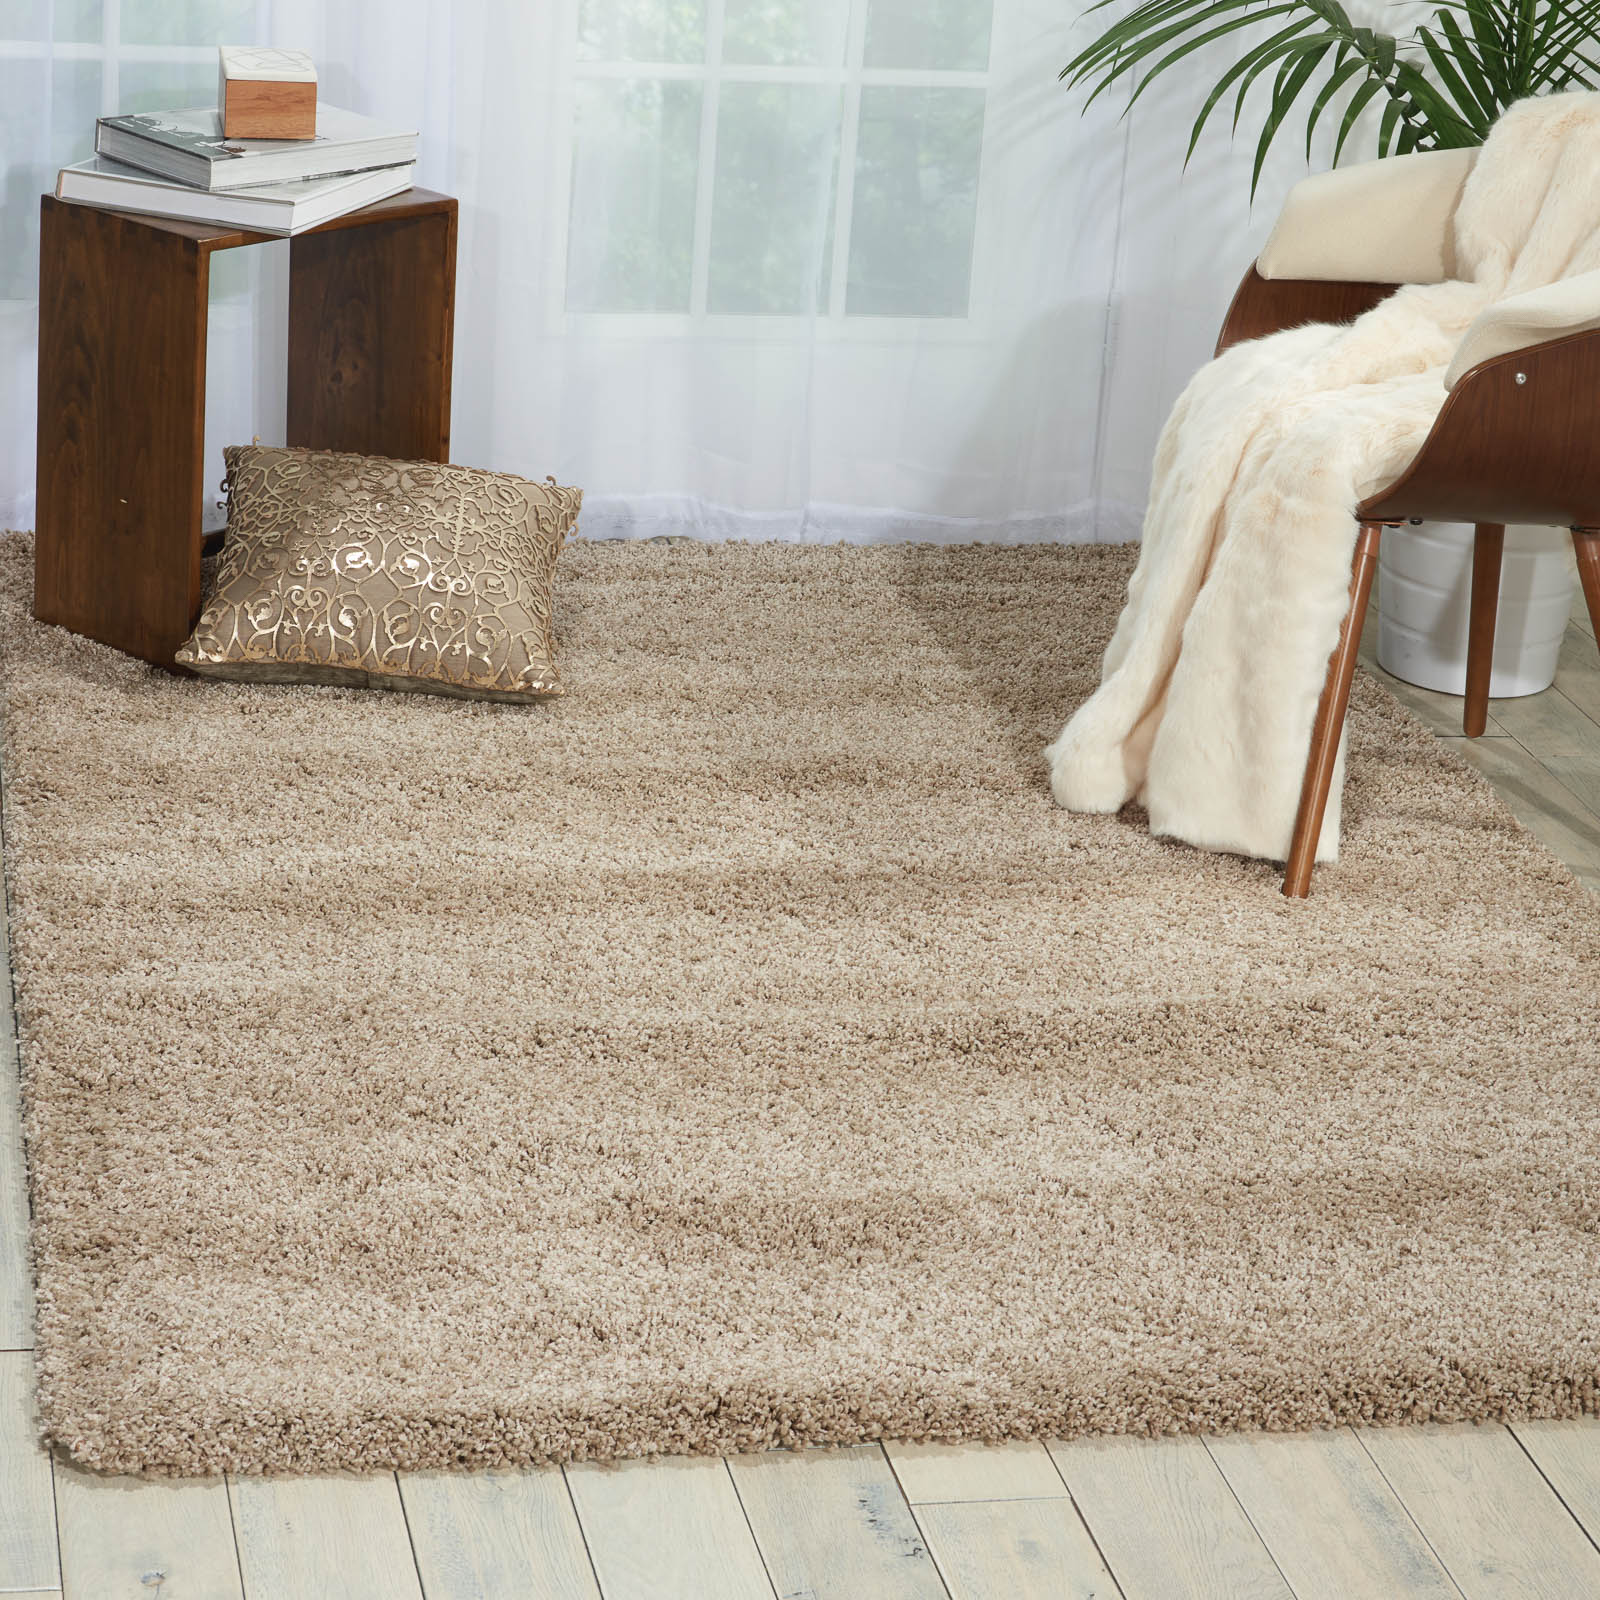 Amore Rugs AMOR1 in Oyster